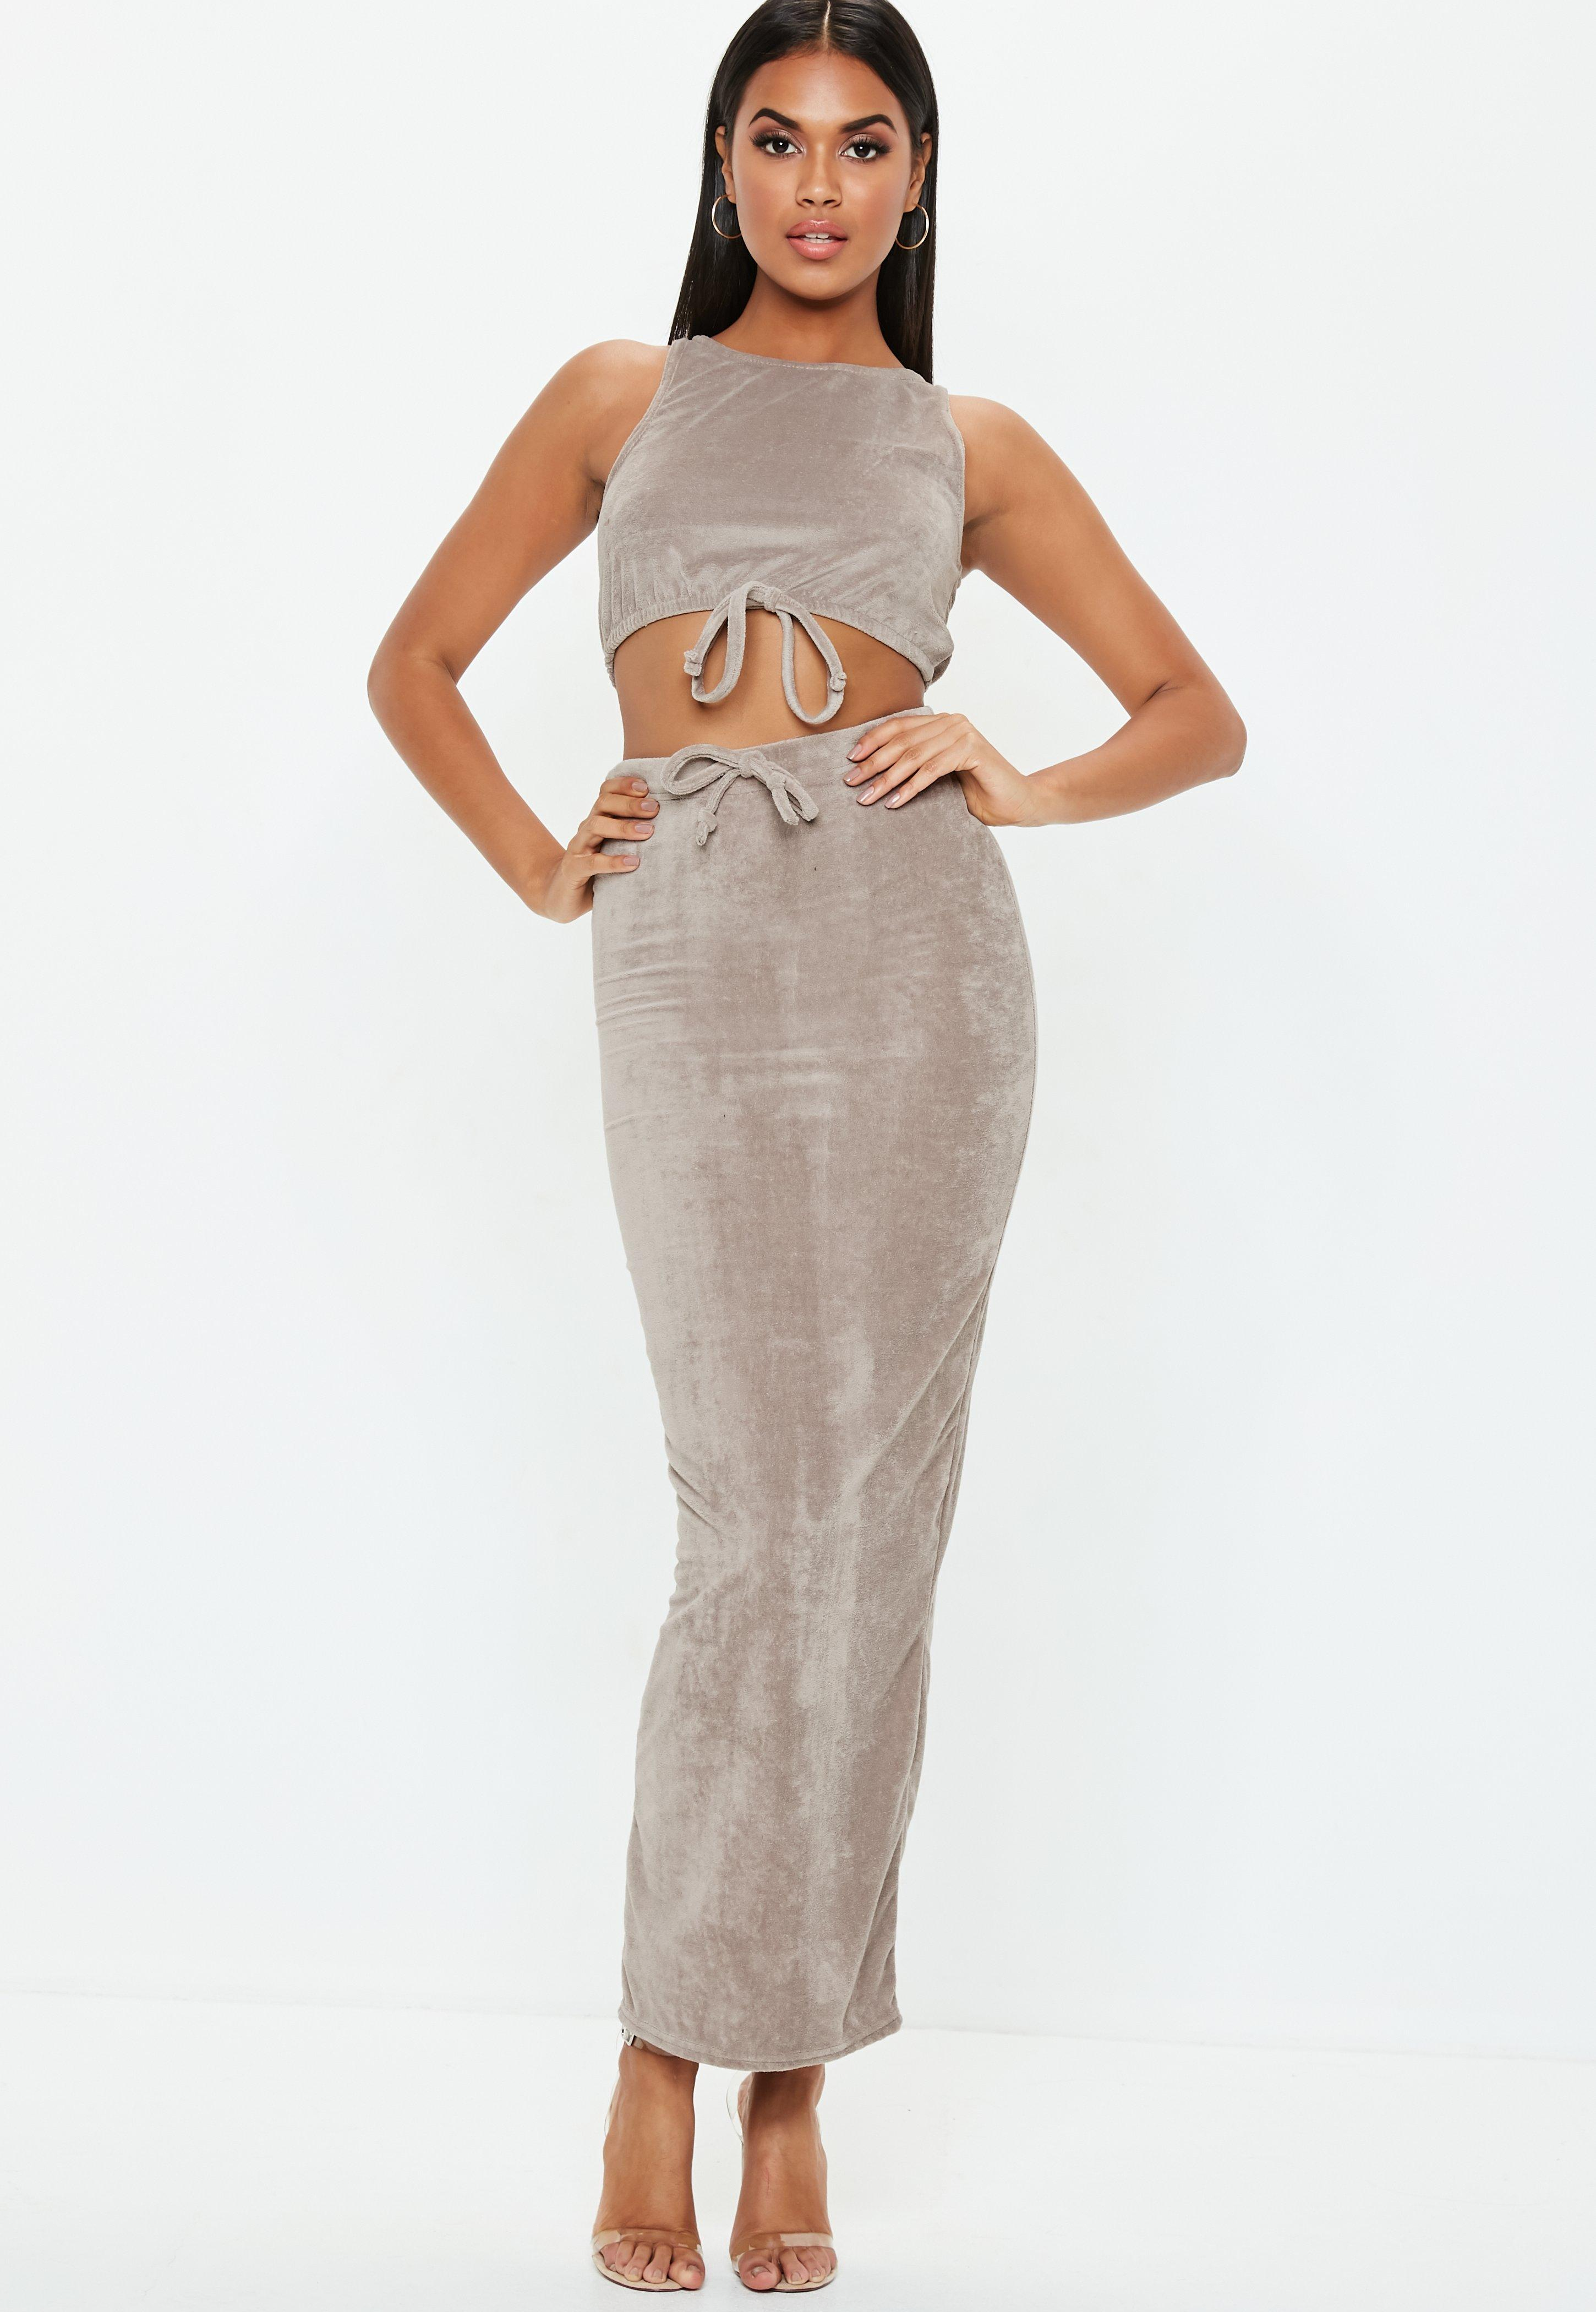 8b642dad15e64 Missguided - Multicolor Taupe Velvet Sleeveless Crop Top - Lyst. View  fullscreen